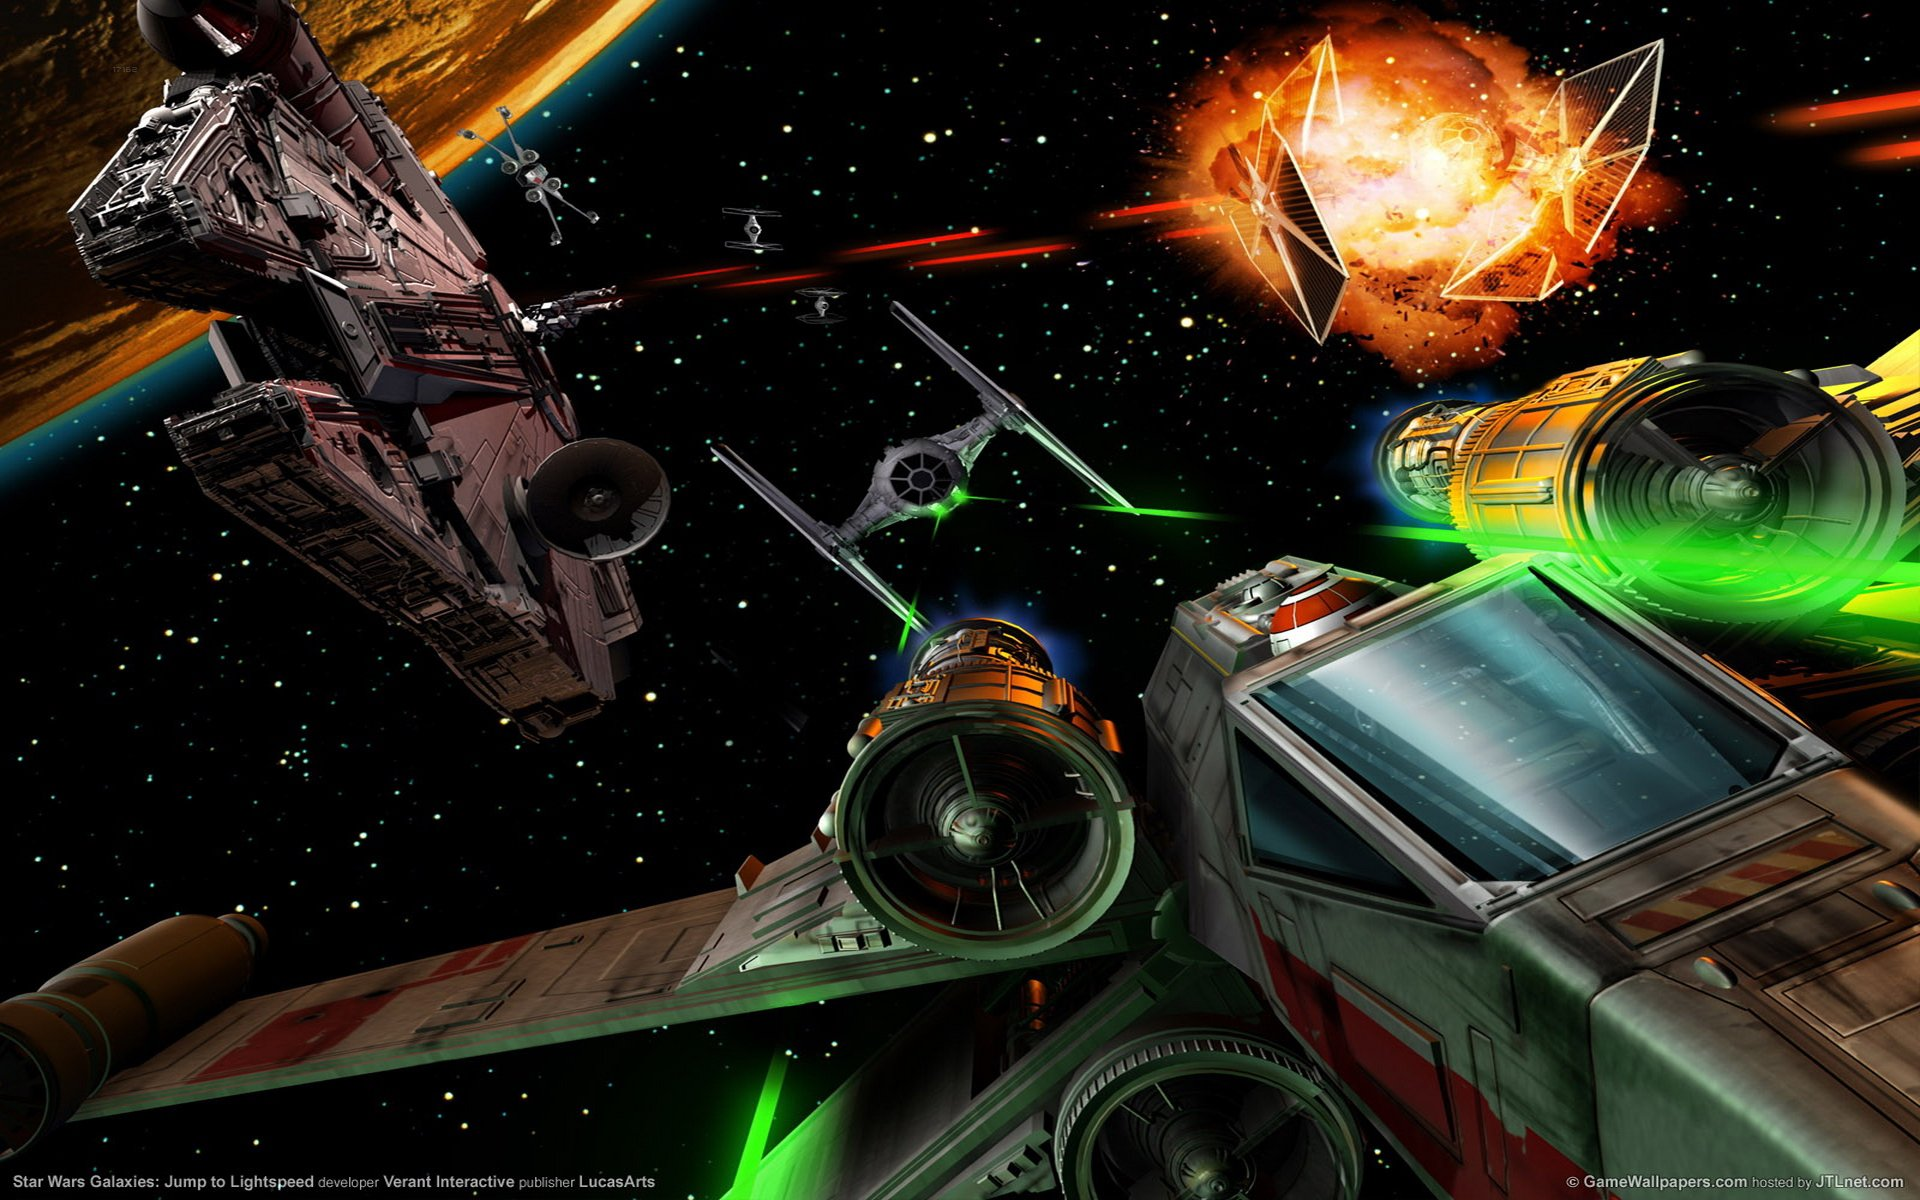 Star Wars Millennium Falcon Space Ship Combat Action Adventure 1920x1200